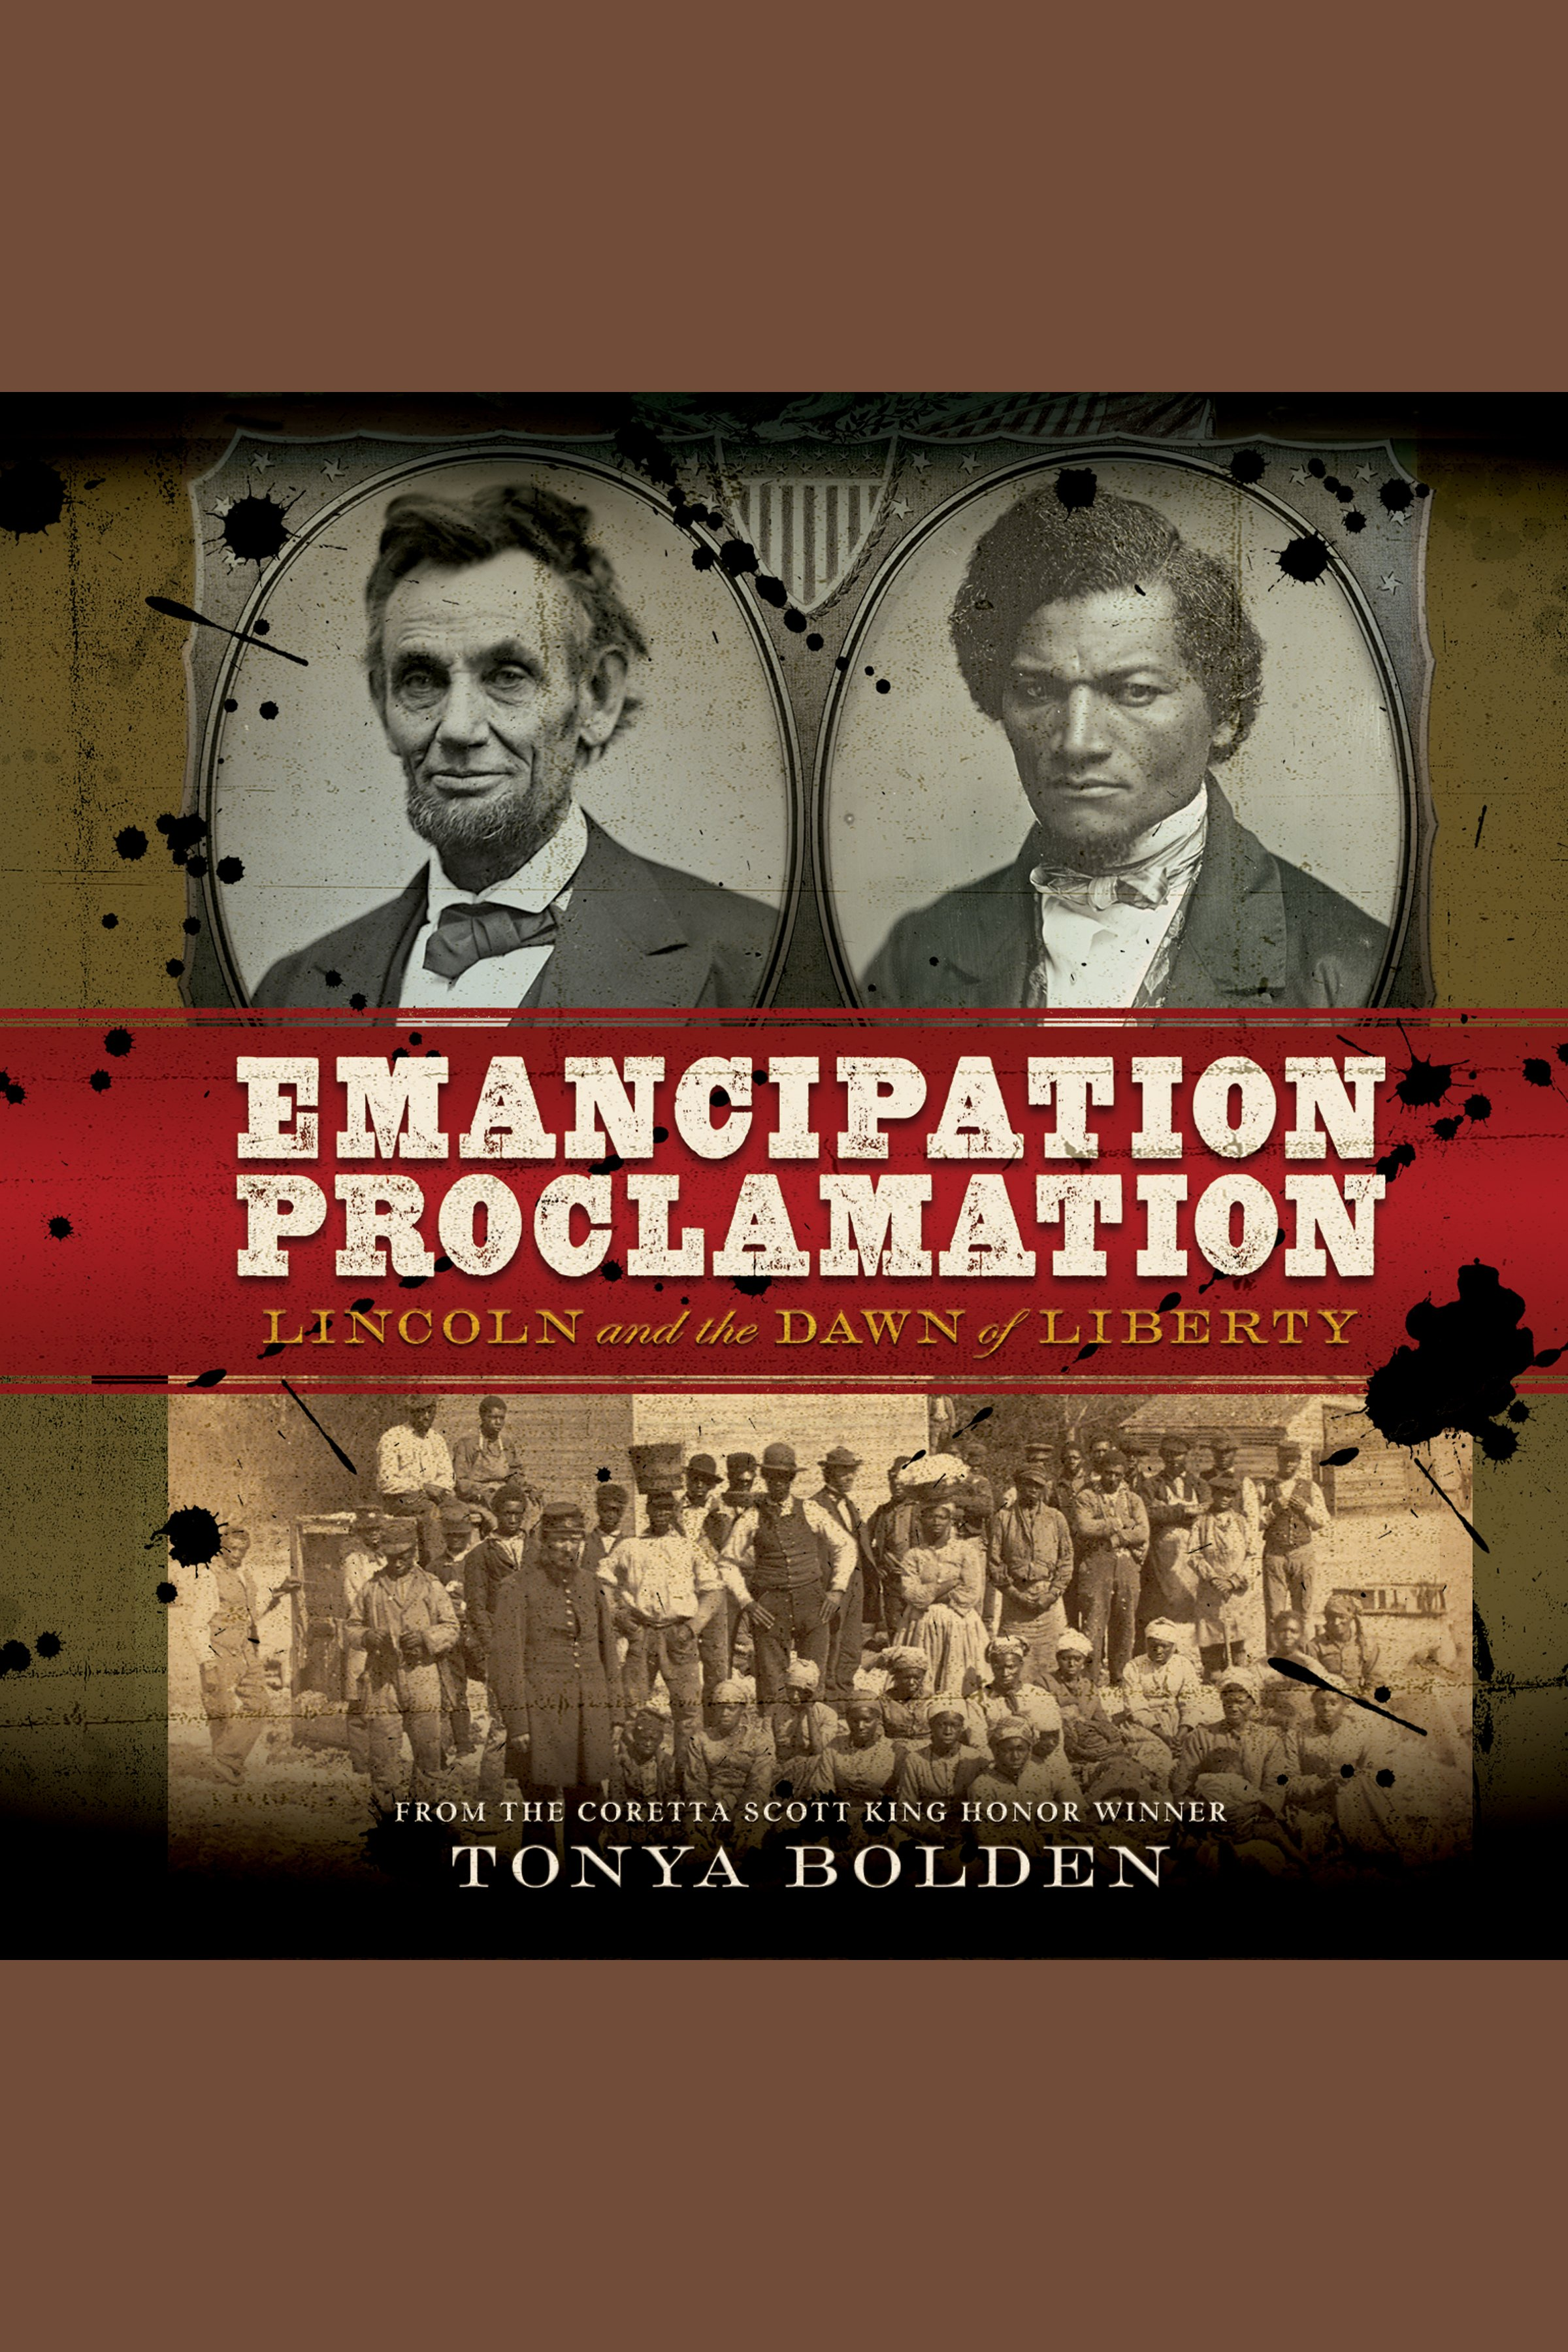 Emancipation Proclamation, The Lincoln and the Dawn of Liberty cover image